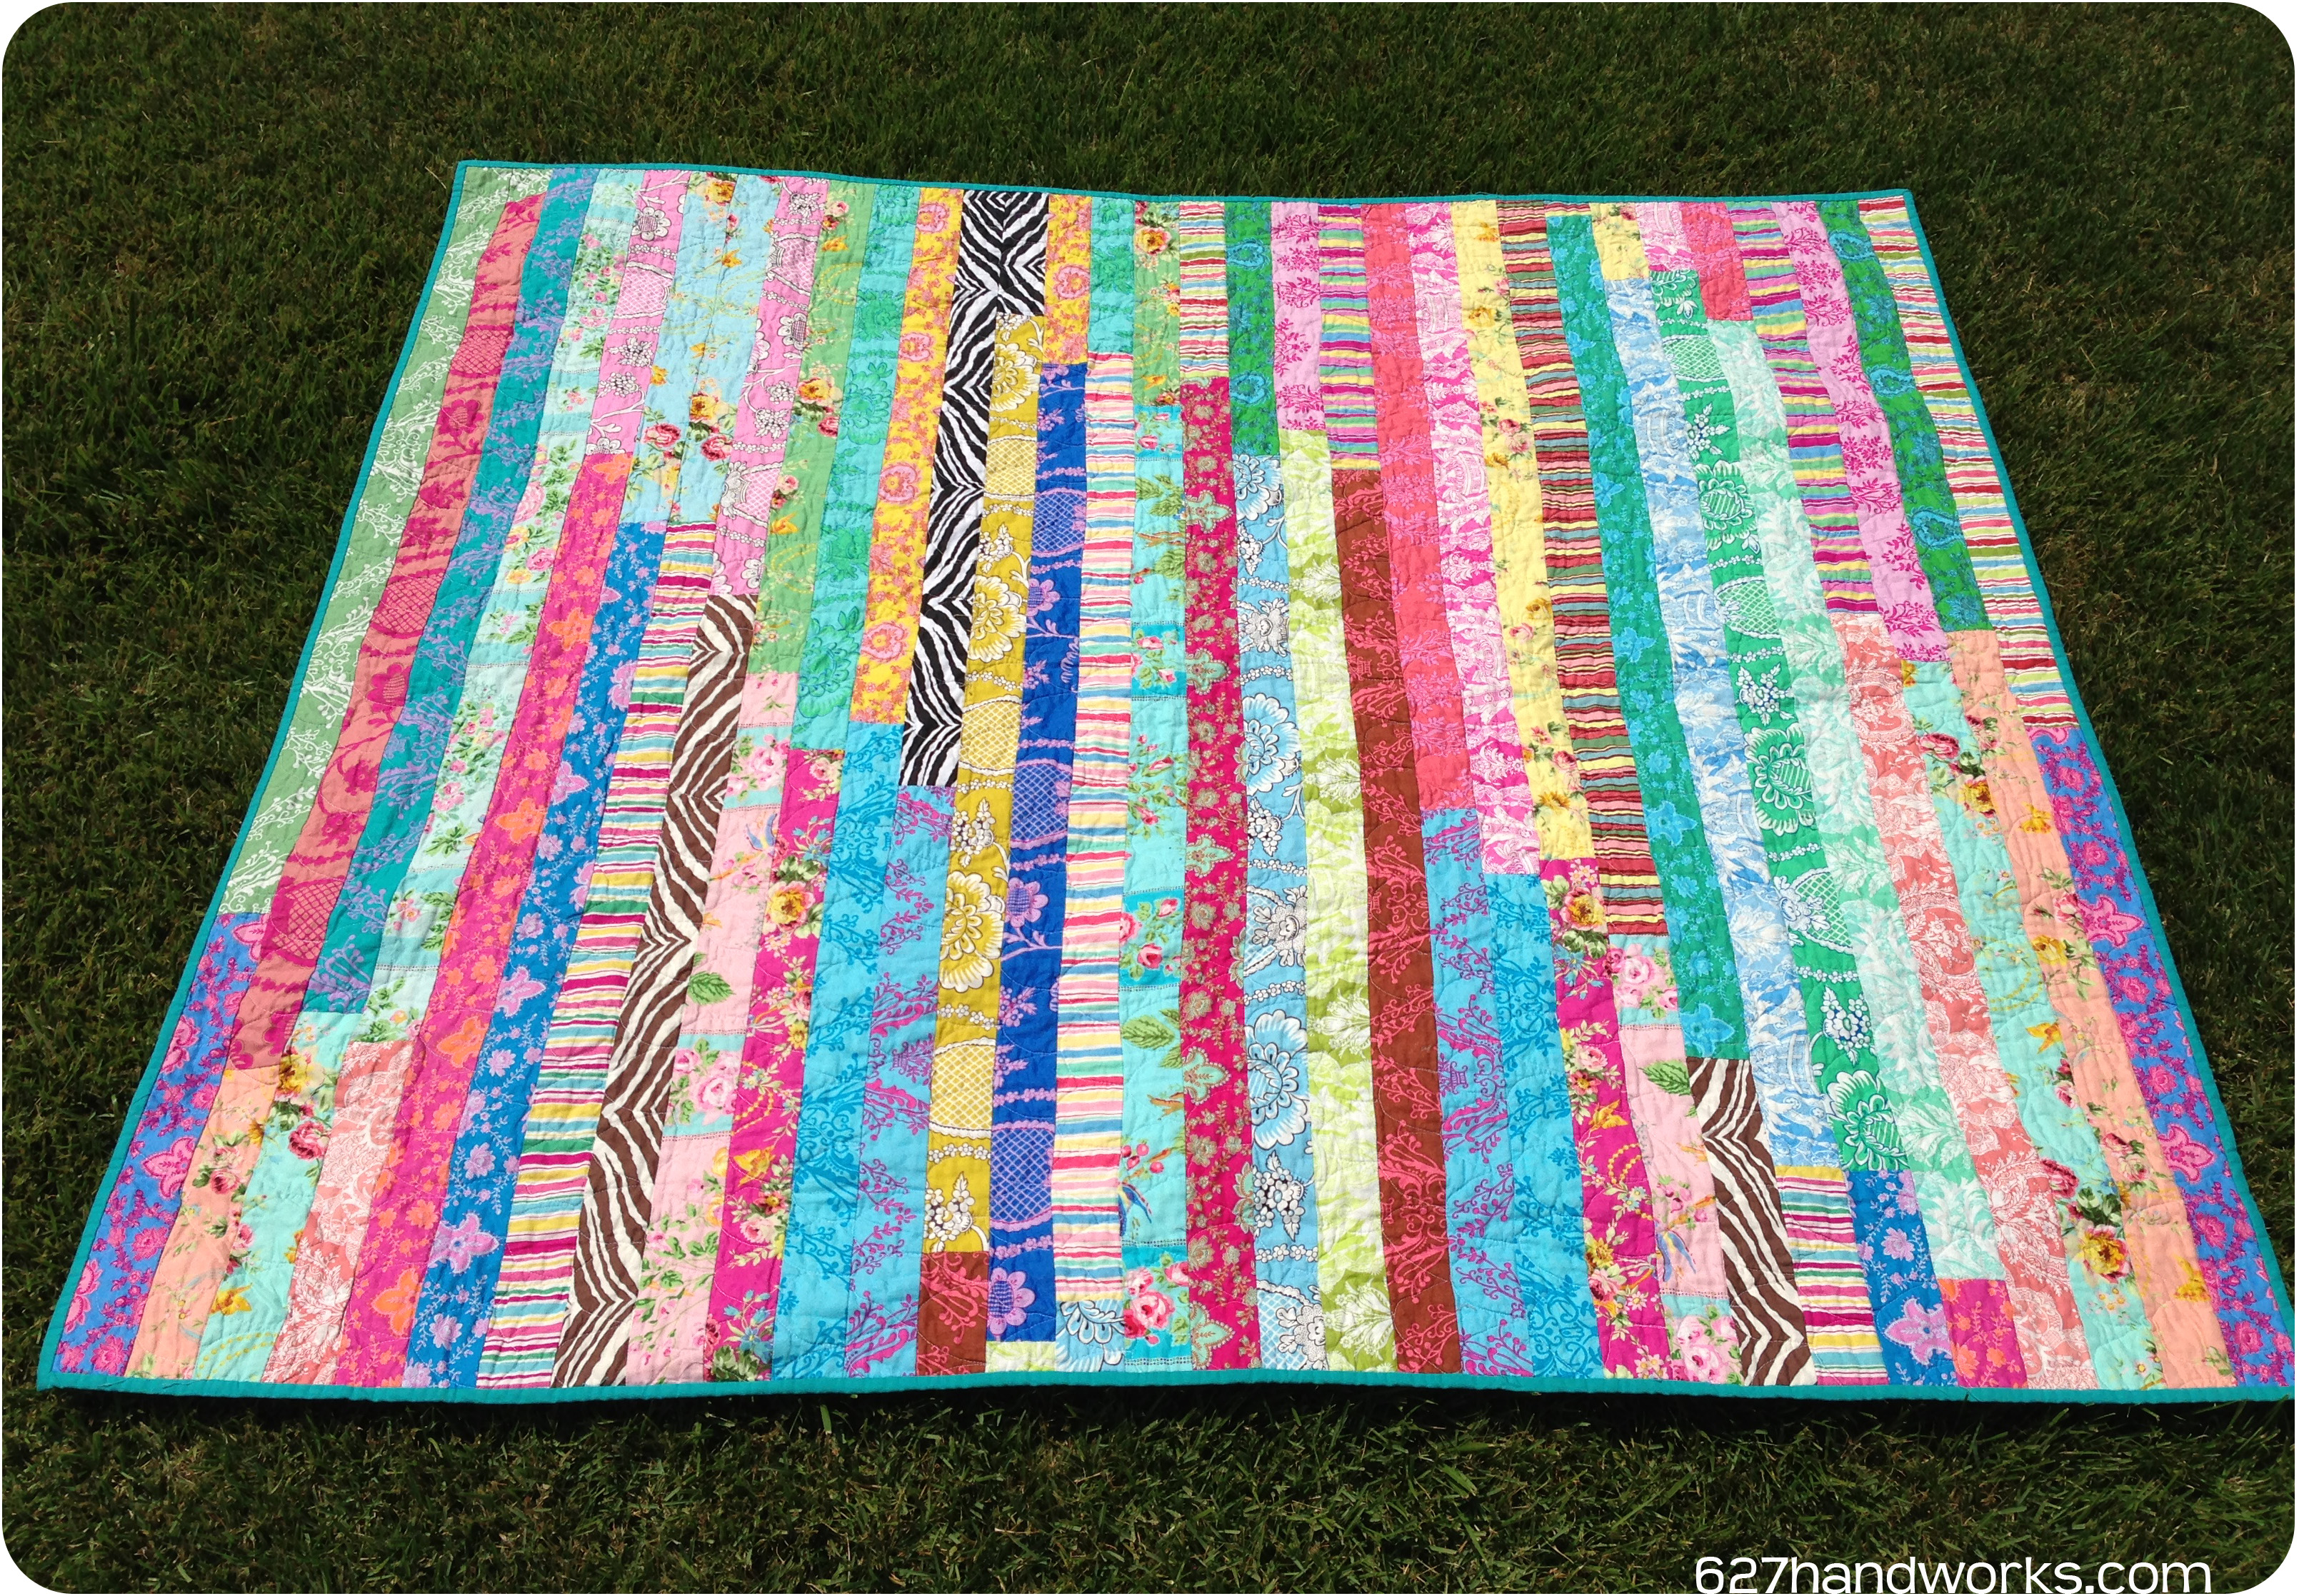 Paganelli Jelly Roll Race | 627handworks : quilting jelly roll - Adamdwight.com